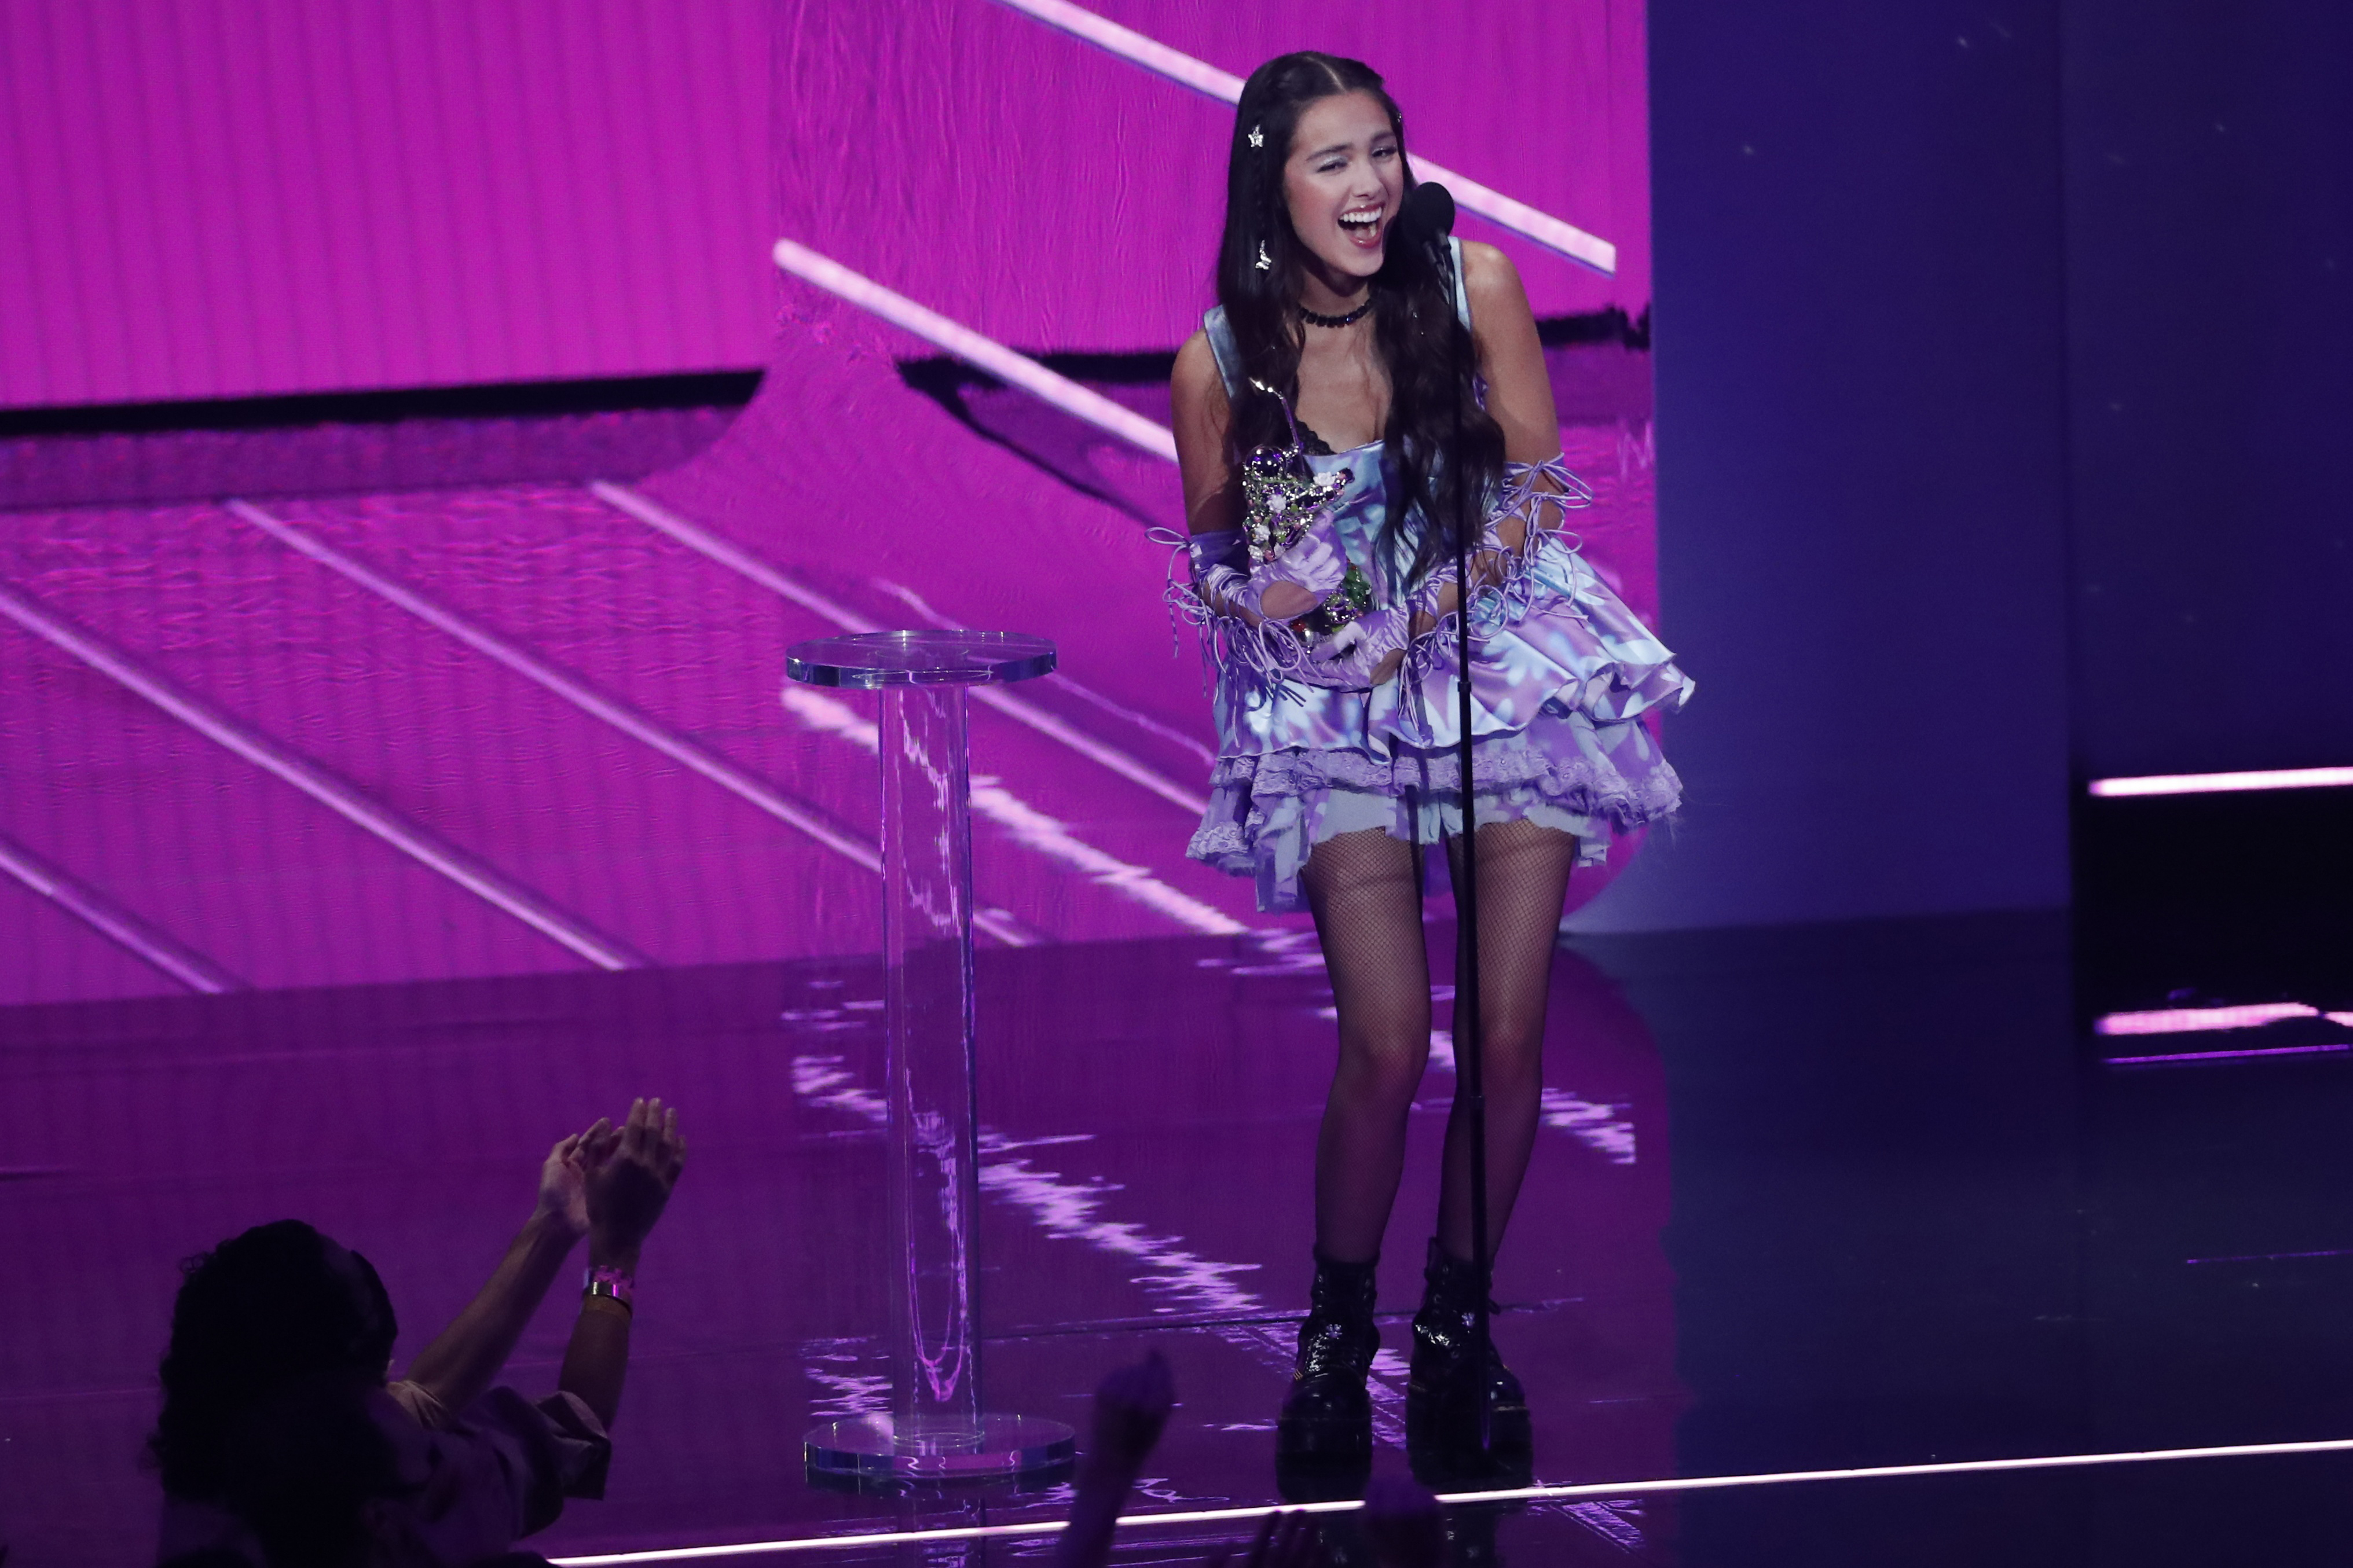 2021 MTV Video Music Awards - Show - Barclays Center, Brooklyn, New York, U.S., September 12, 2021 - Olivia Rodrigo accepts the award for Song of the Year for